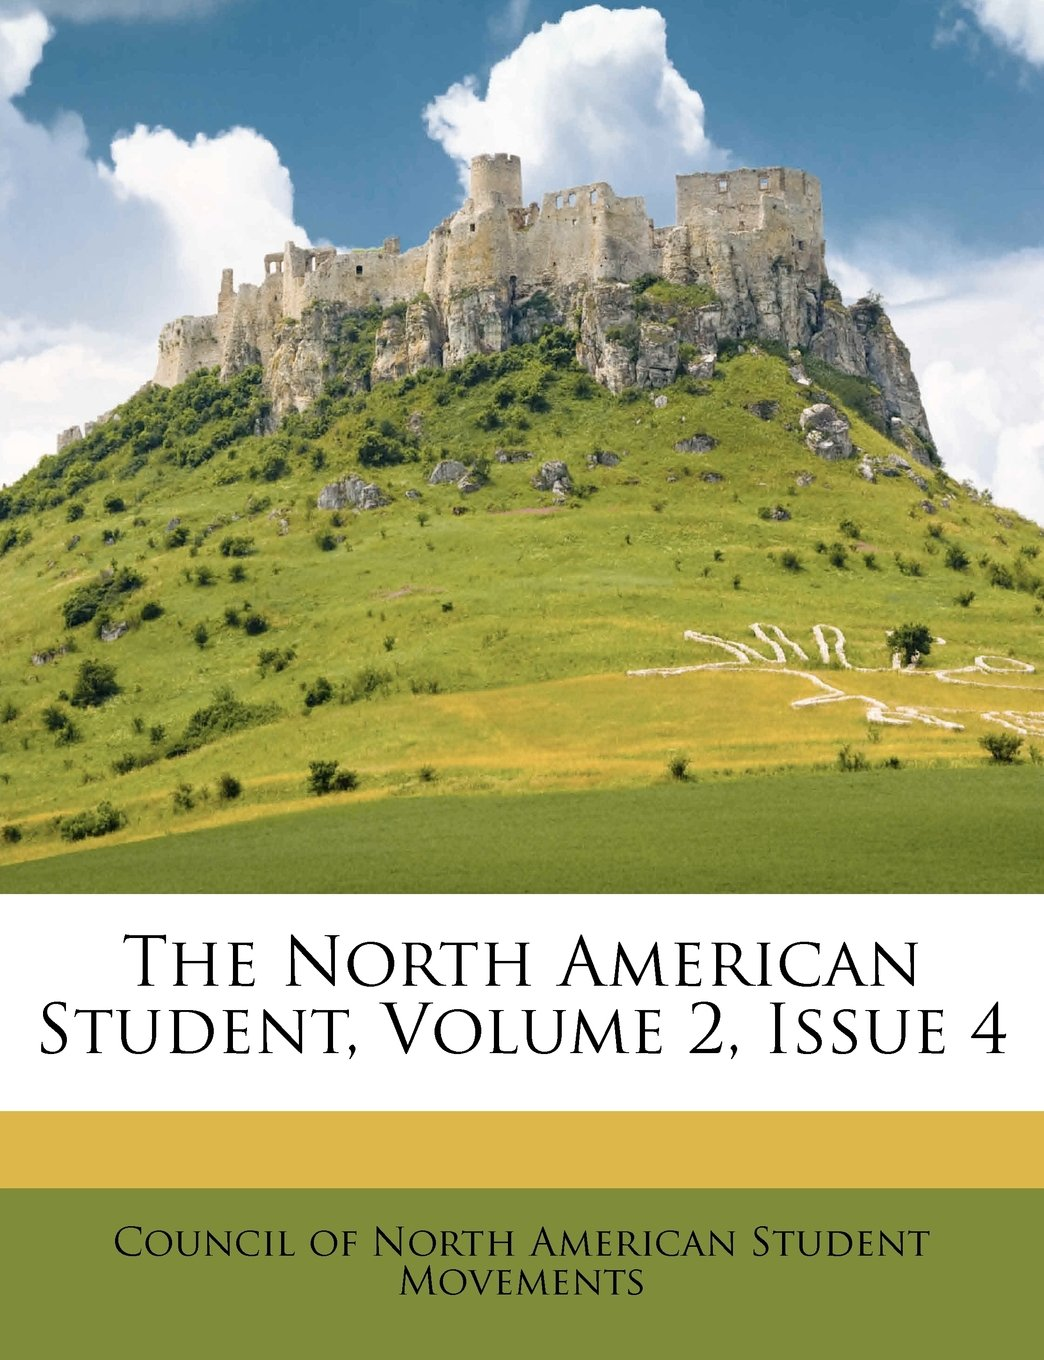 The North American Student, Volume 2, Issue 4 ebook